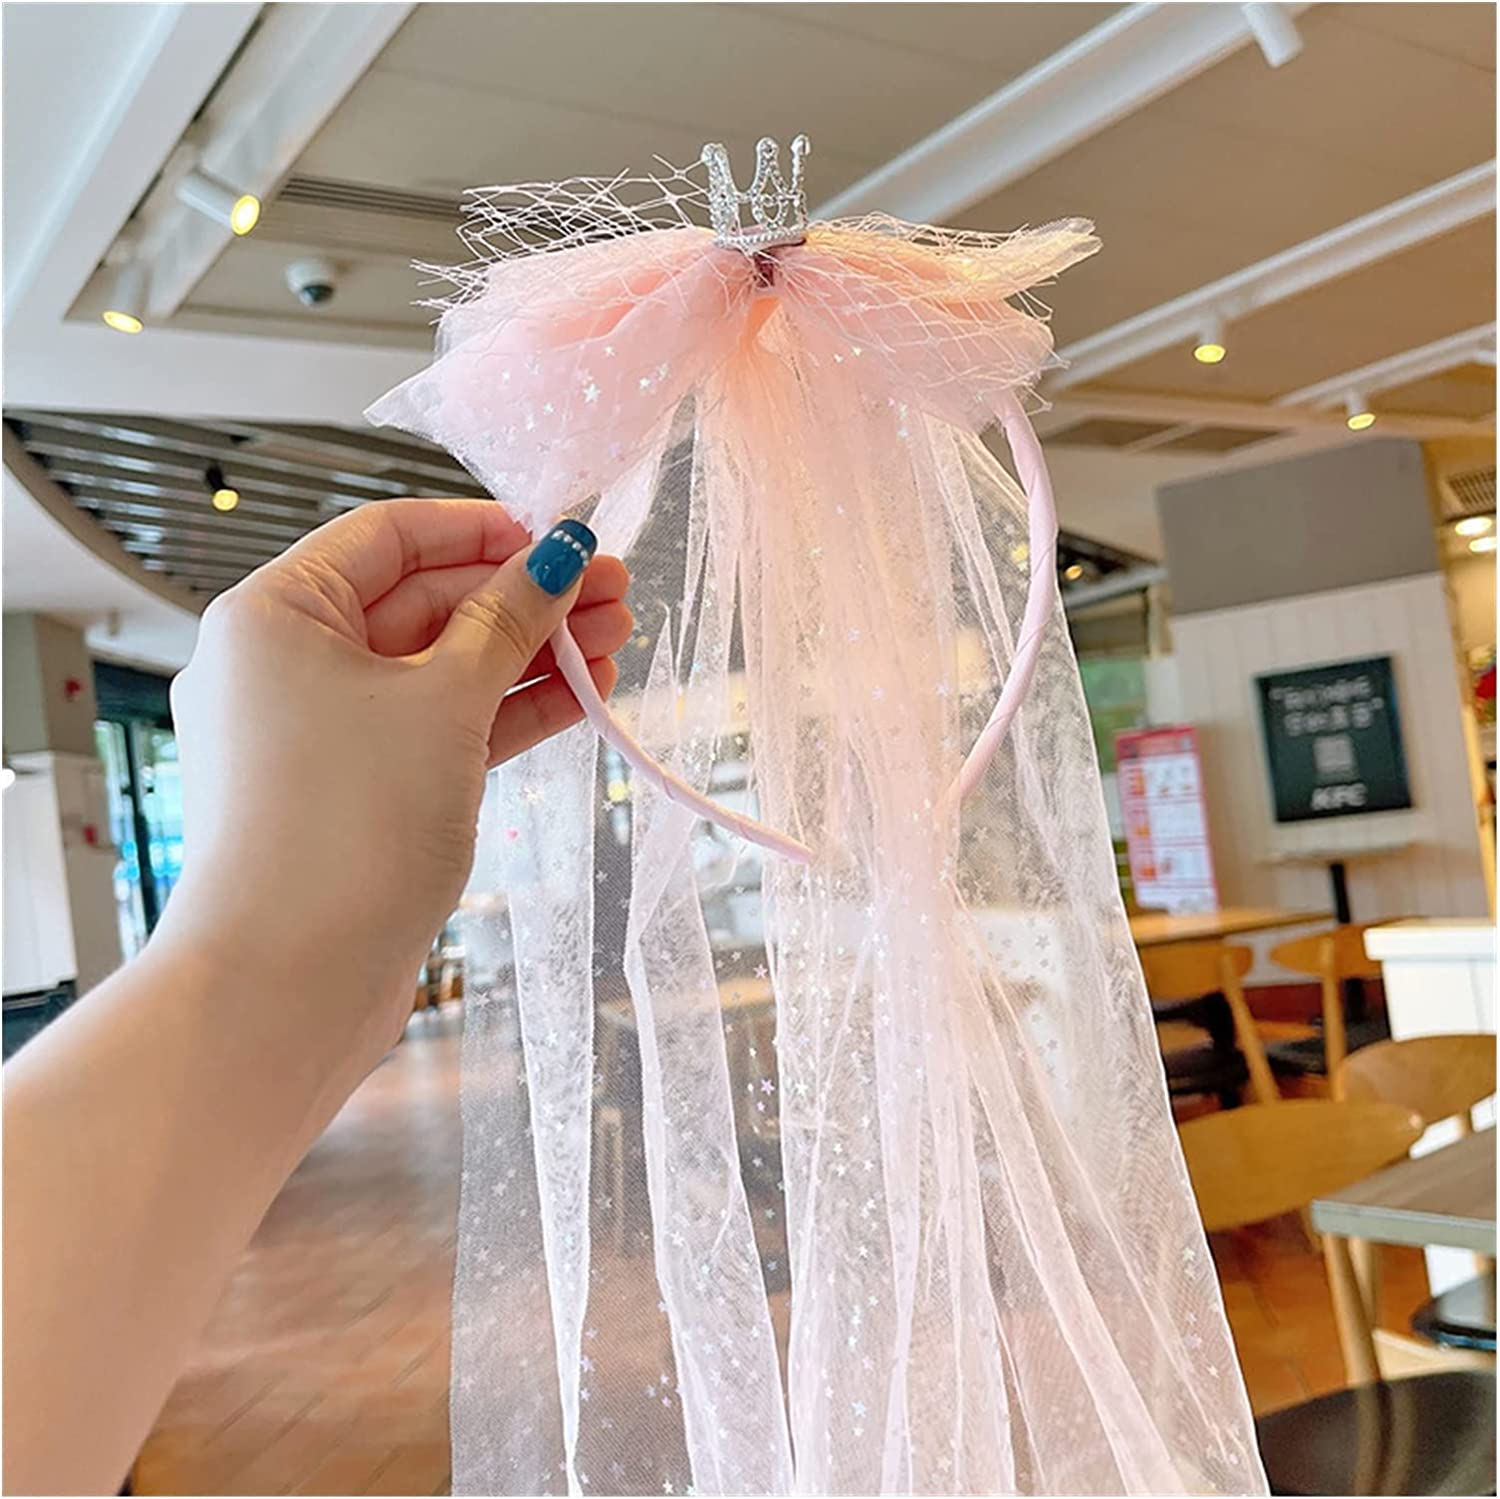 XKMY Flower Girl's First Communion Veil Headband with Bow Crown Headdress Birthday Party Christmas Veil Hair Accessories (Color : Pink)